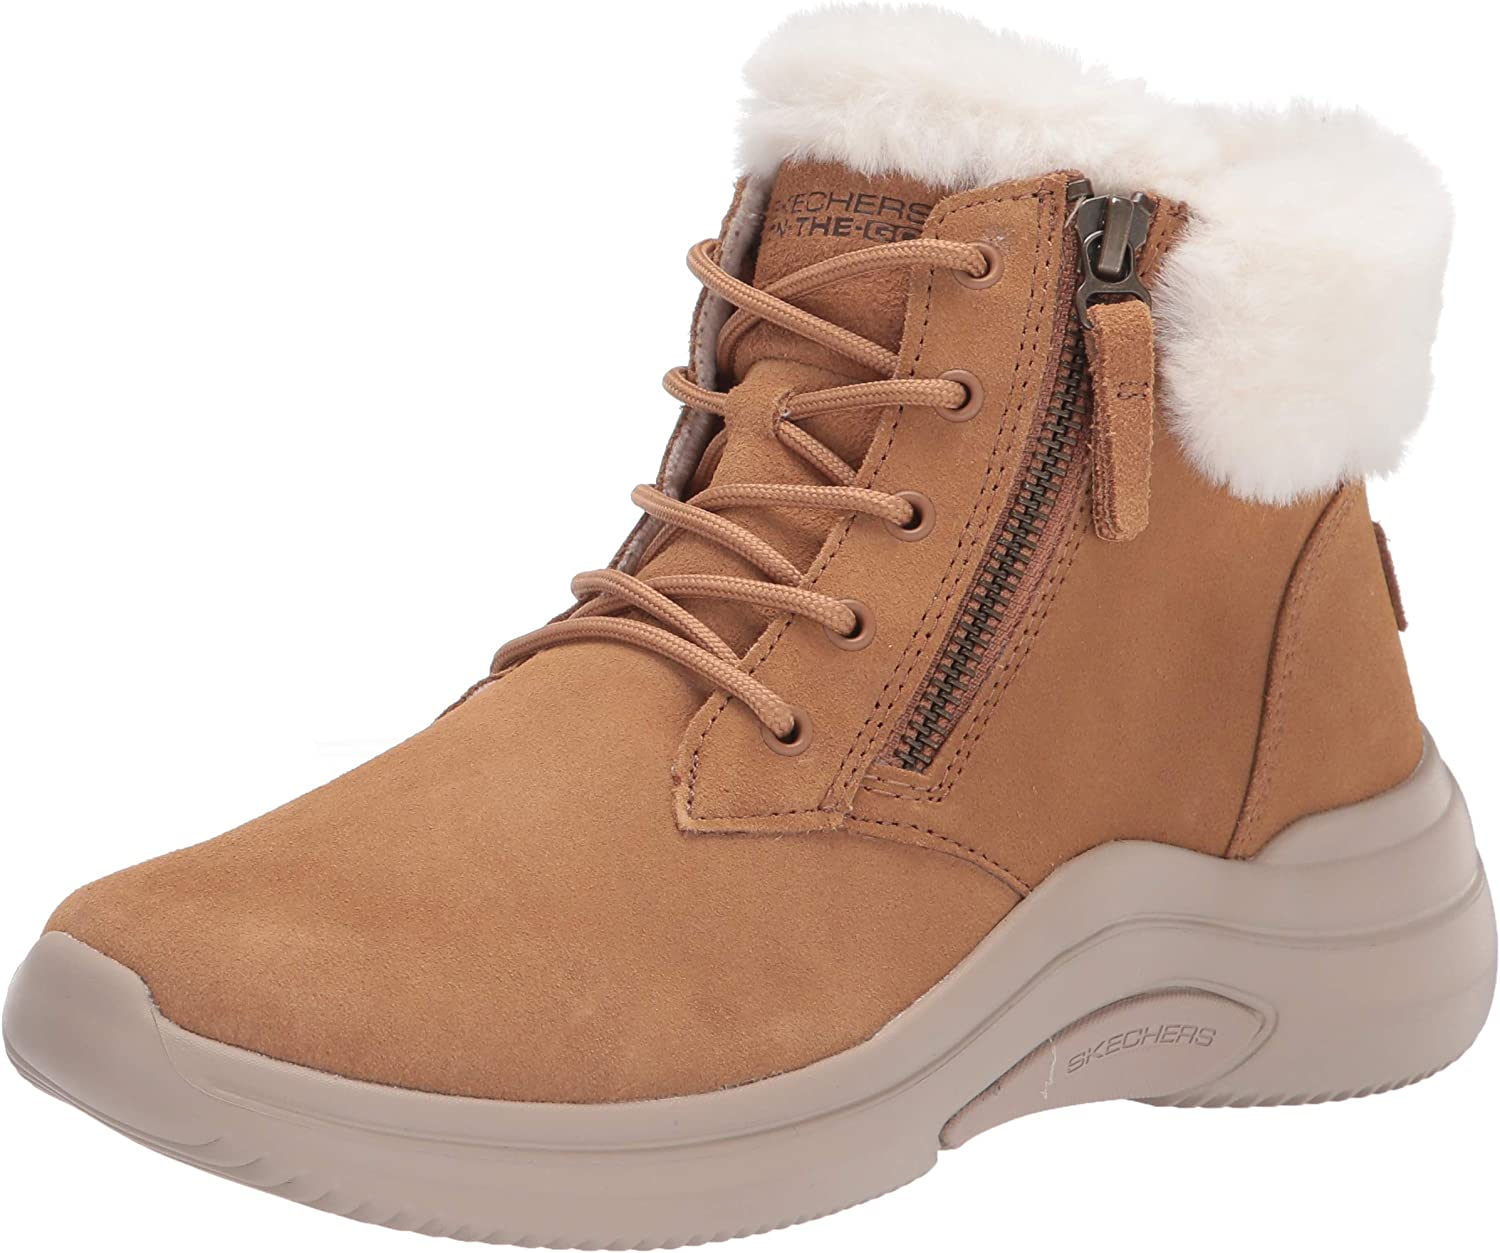 Skechers Women's Boot Sale special It is very popular price Fashion